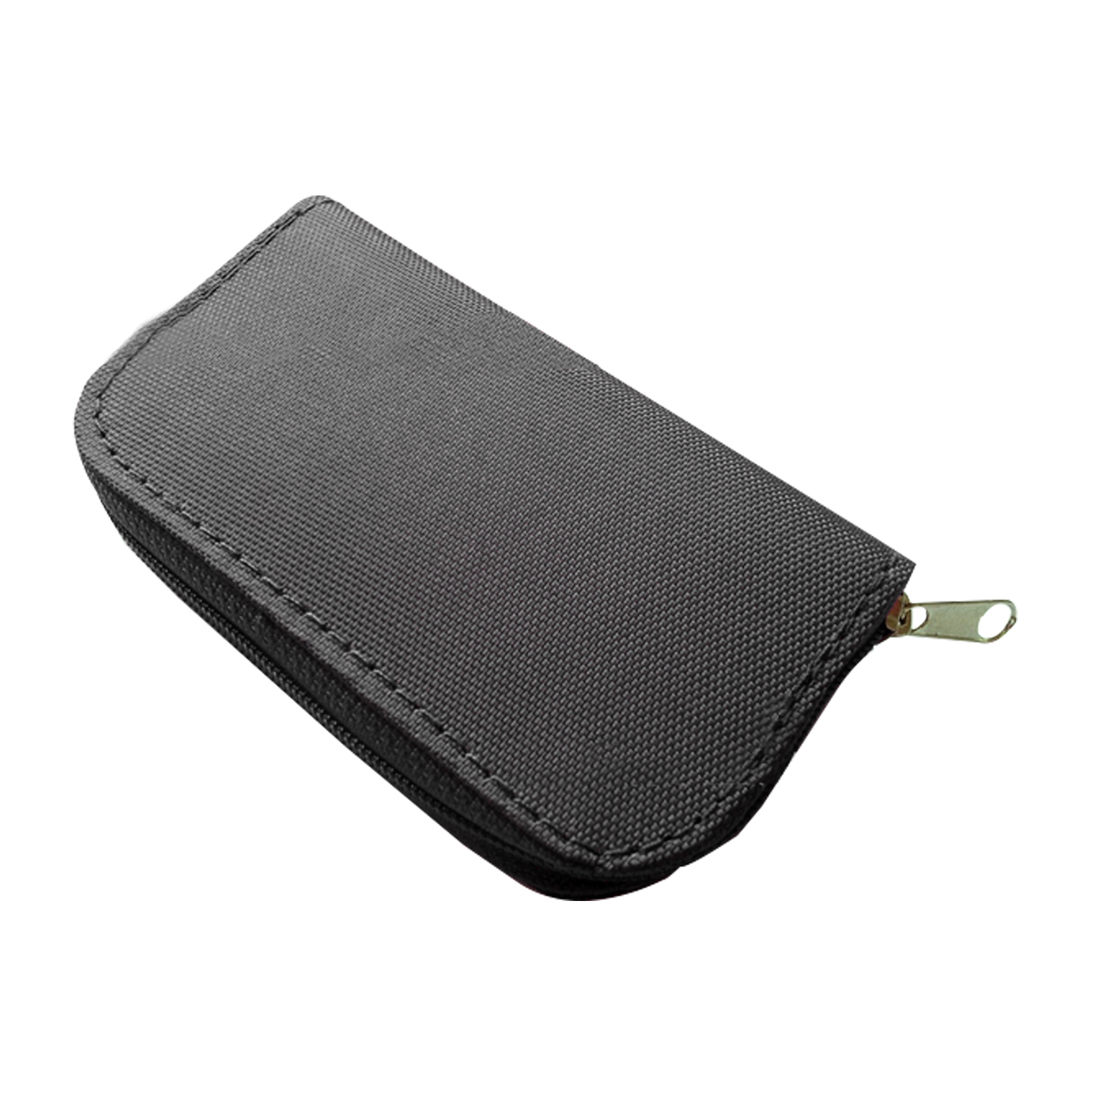 Centechia  Gray Memory Card Storage Carrying Case Holder Wallet 18slots + 4 Slots For CF/SD/SDHC/MS/DS 3DS Game Accessory